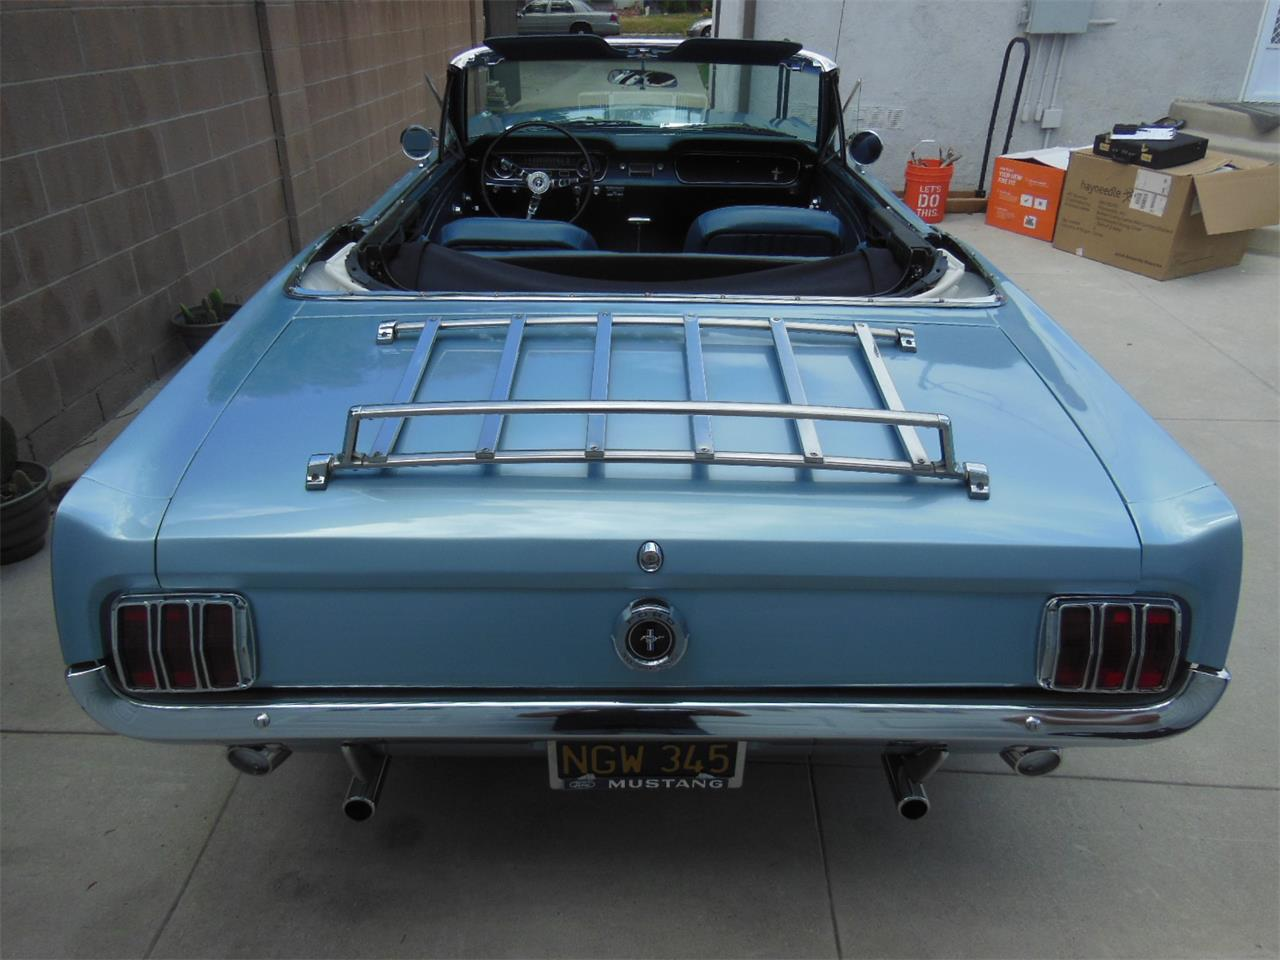 Large Picture of '65 Mustang located in west hills California - $29,900.00 Offered by a Private Seller - Q1U8